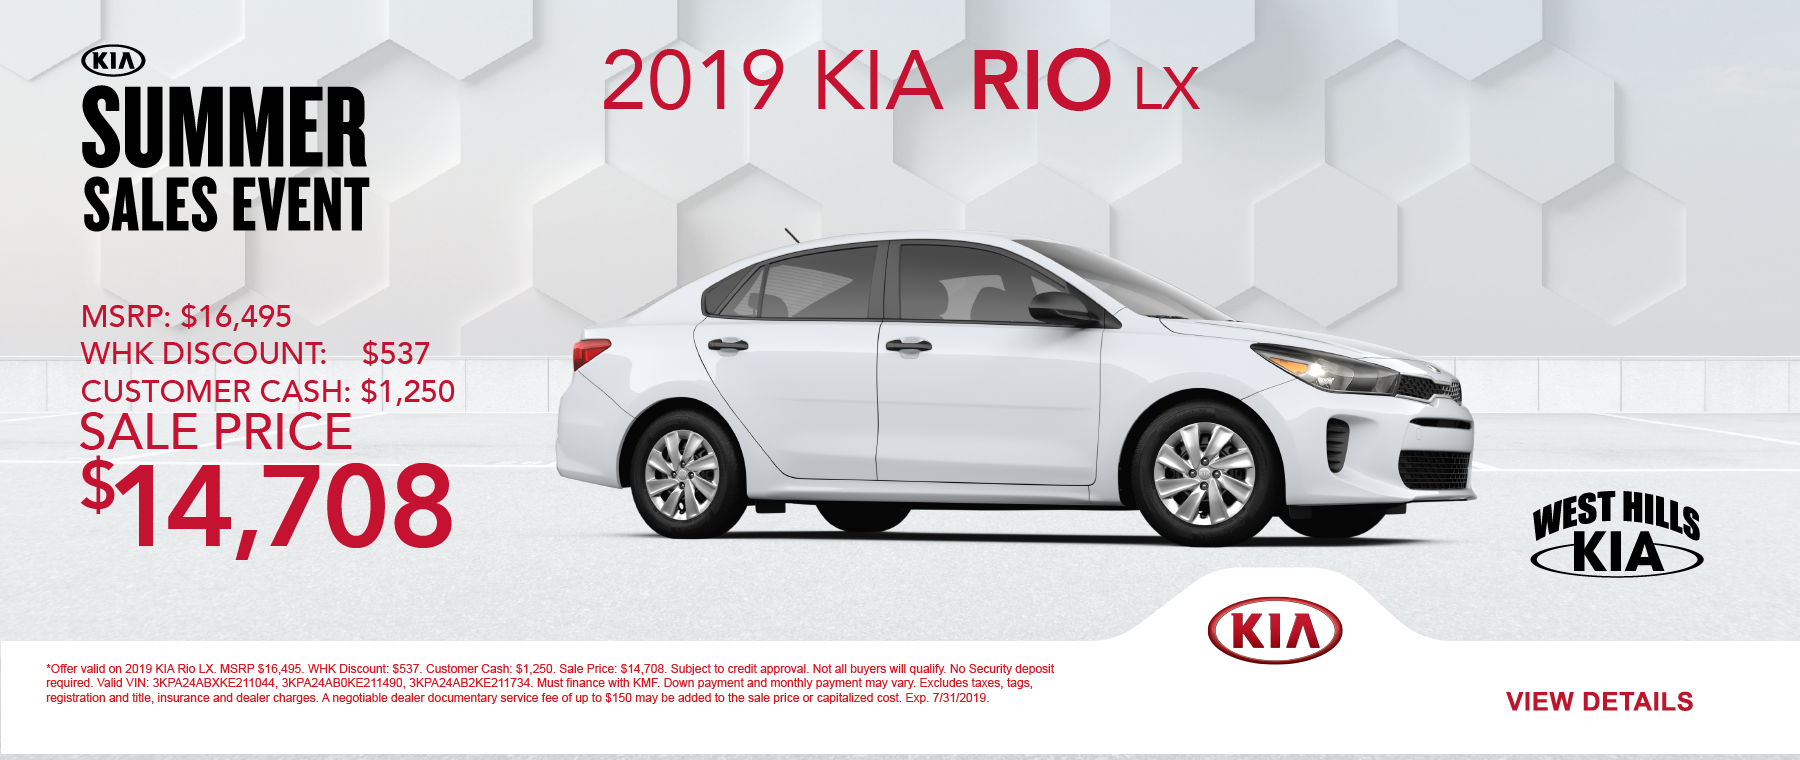 2019 KIA Rio LX  MSRP: $16,495 WHK Discount: $537 Customer Cash: $1,250  Sale Price: $14,708   *Offer valid on 2019 KIA Rio LX. MSRP $16,495. WHK Discount: $537. Customer Cash: $1,250. Sale Price: $14,708. Subject to credit approval. Not all buyers will qualify. No Security deposit required. Valid VIN: 3KPA24ABXKE211044, 3KPA24AB0KE211490, 3KPA24AB2KE211734. Must finance with KMF. Down payment and monthly payment may vary. Excludes taxes, tags, registration and title, insurance and dealer charges. A negotiable dealer documentary service fee of up to $150 may be added to the sale price or capitalized cost. Exp. 7/31/2019.